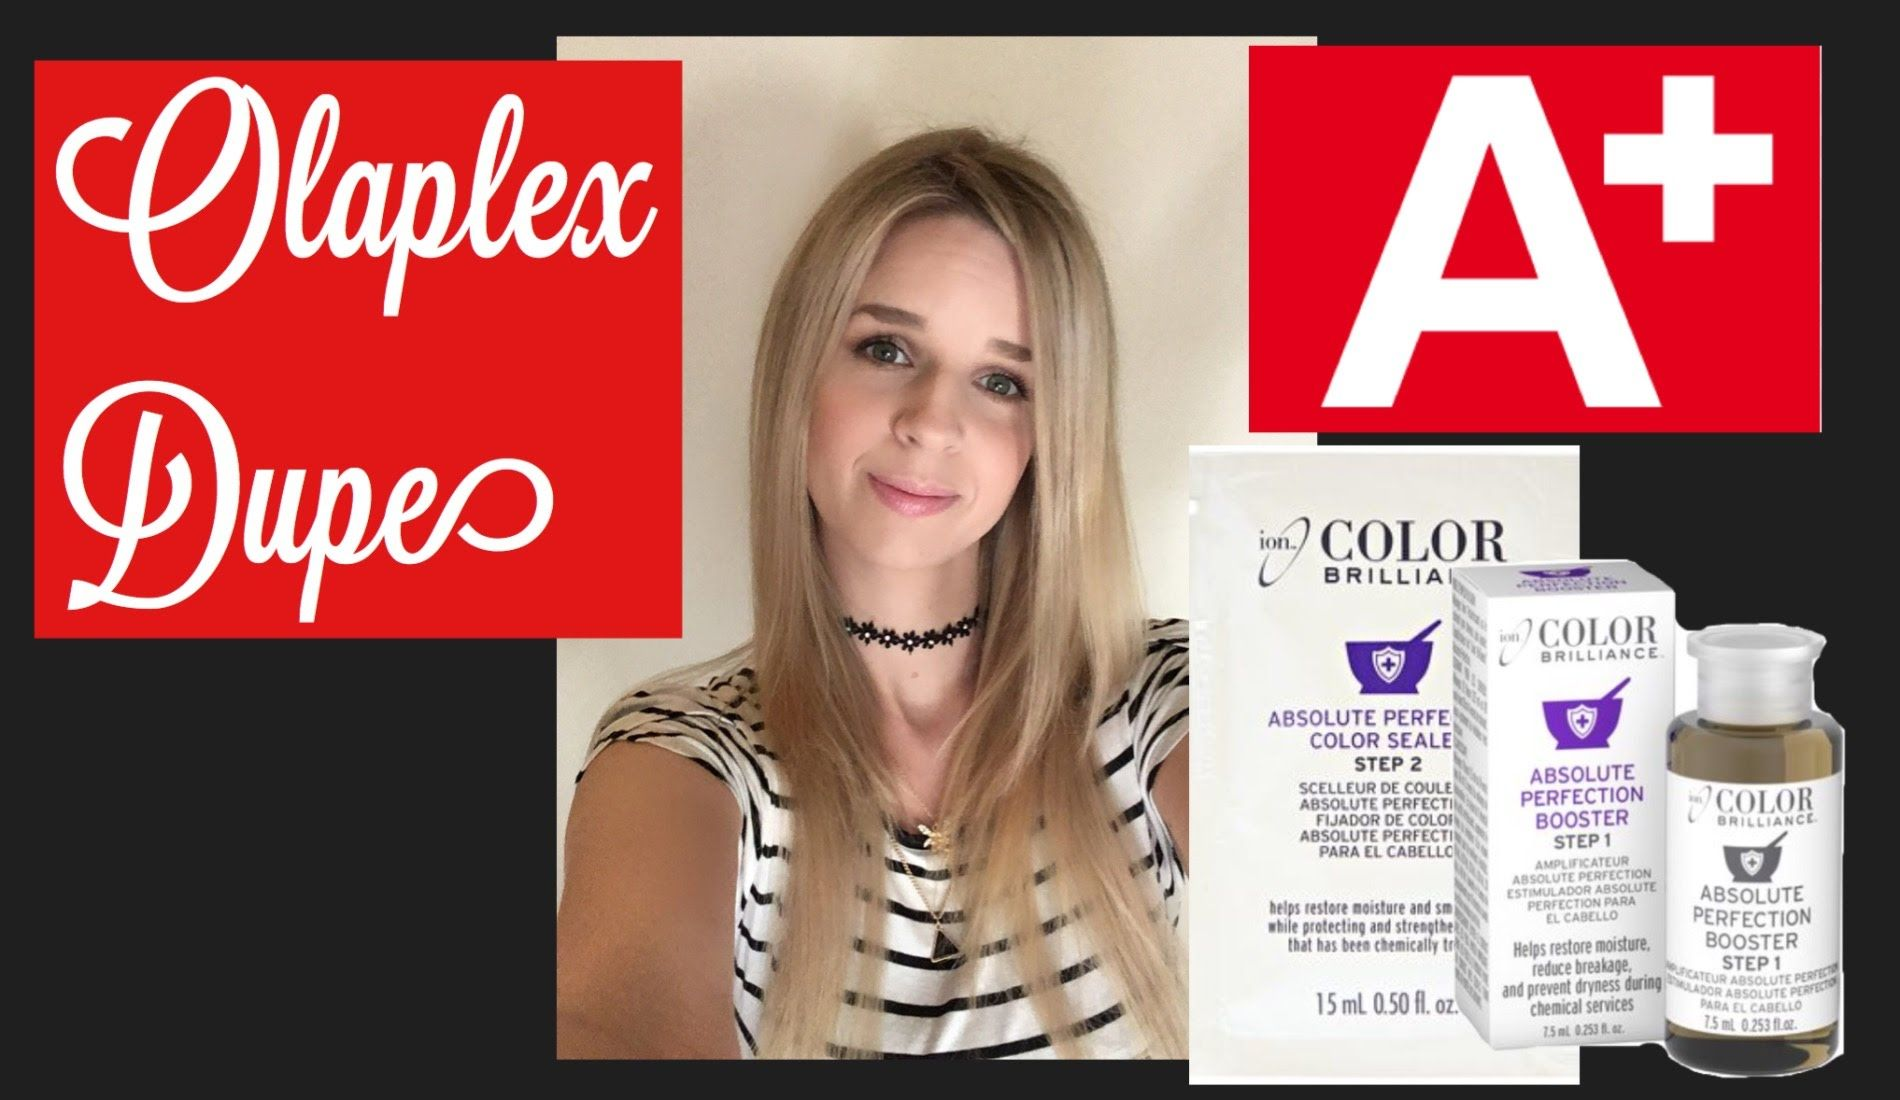 Olaplex Dupe From Sallys Beauty Less Damage For Bleaching Or